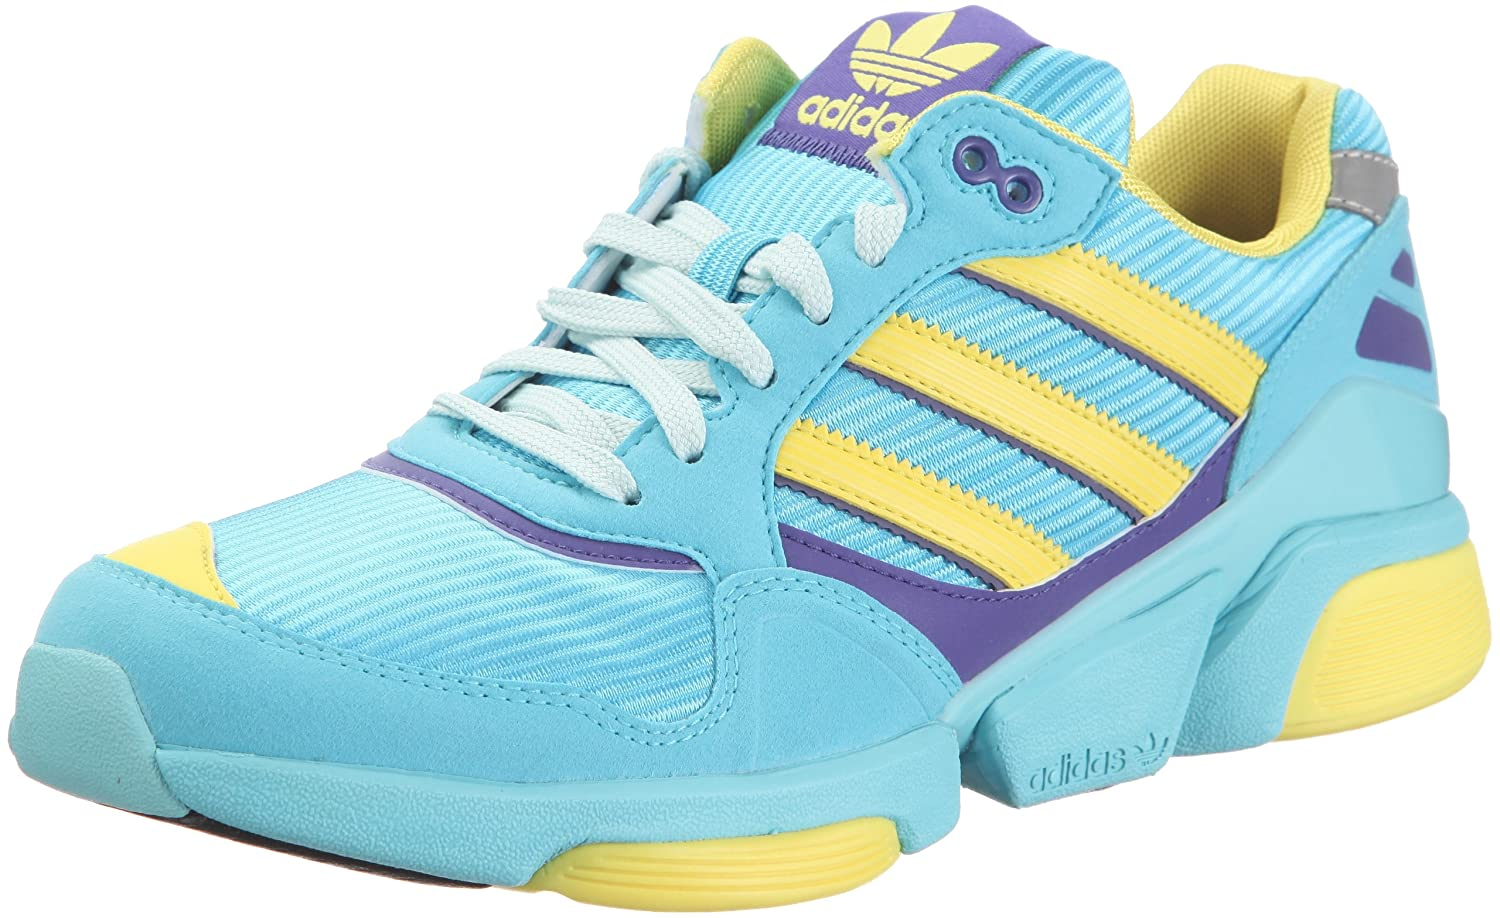 adidas Originals Mega Torsion RVI U43636 Unisex Trainers Blue Size  10.5  UK  Amazon.co.uk  Shoes   Bags cec918979